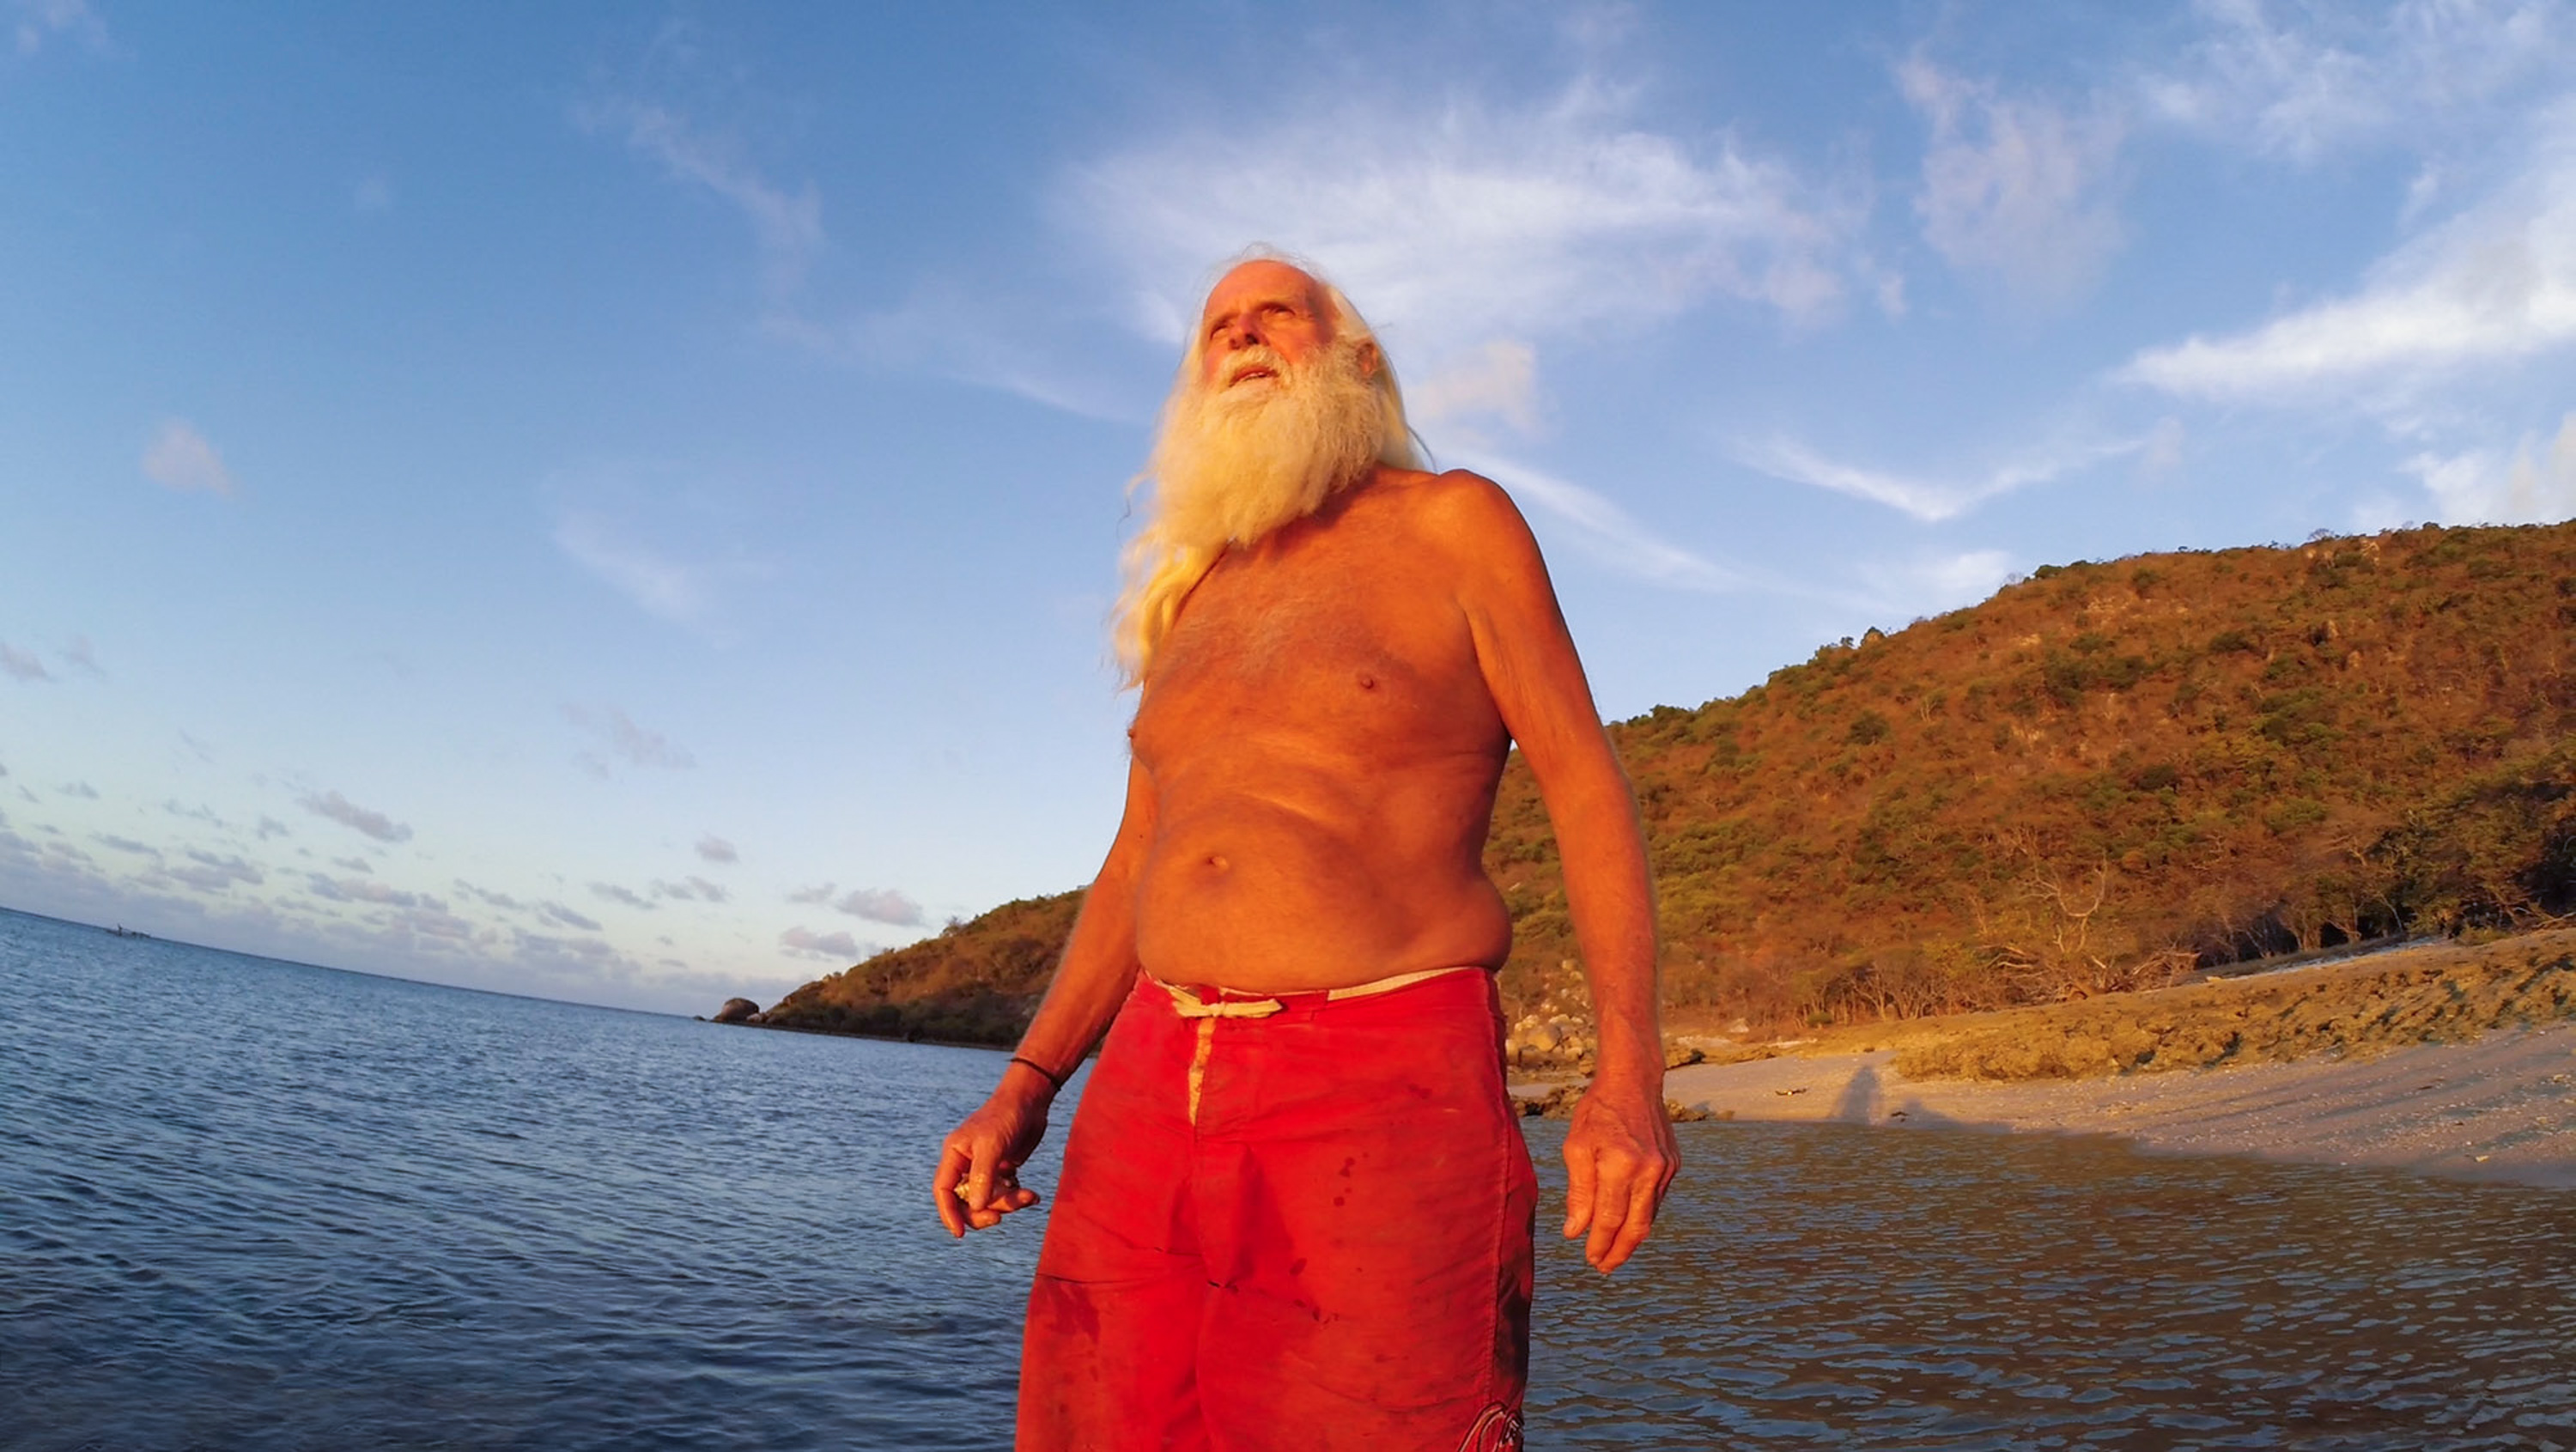 A ruined Australian millionaire has been living alone on an uninhabited island for 20 years